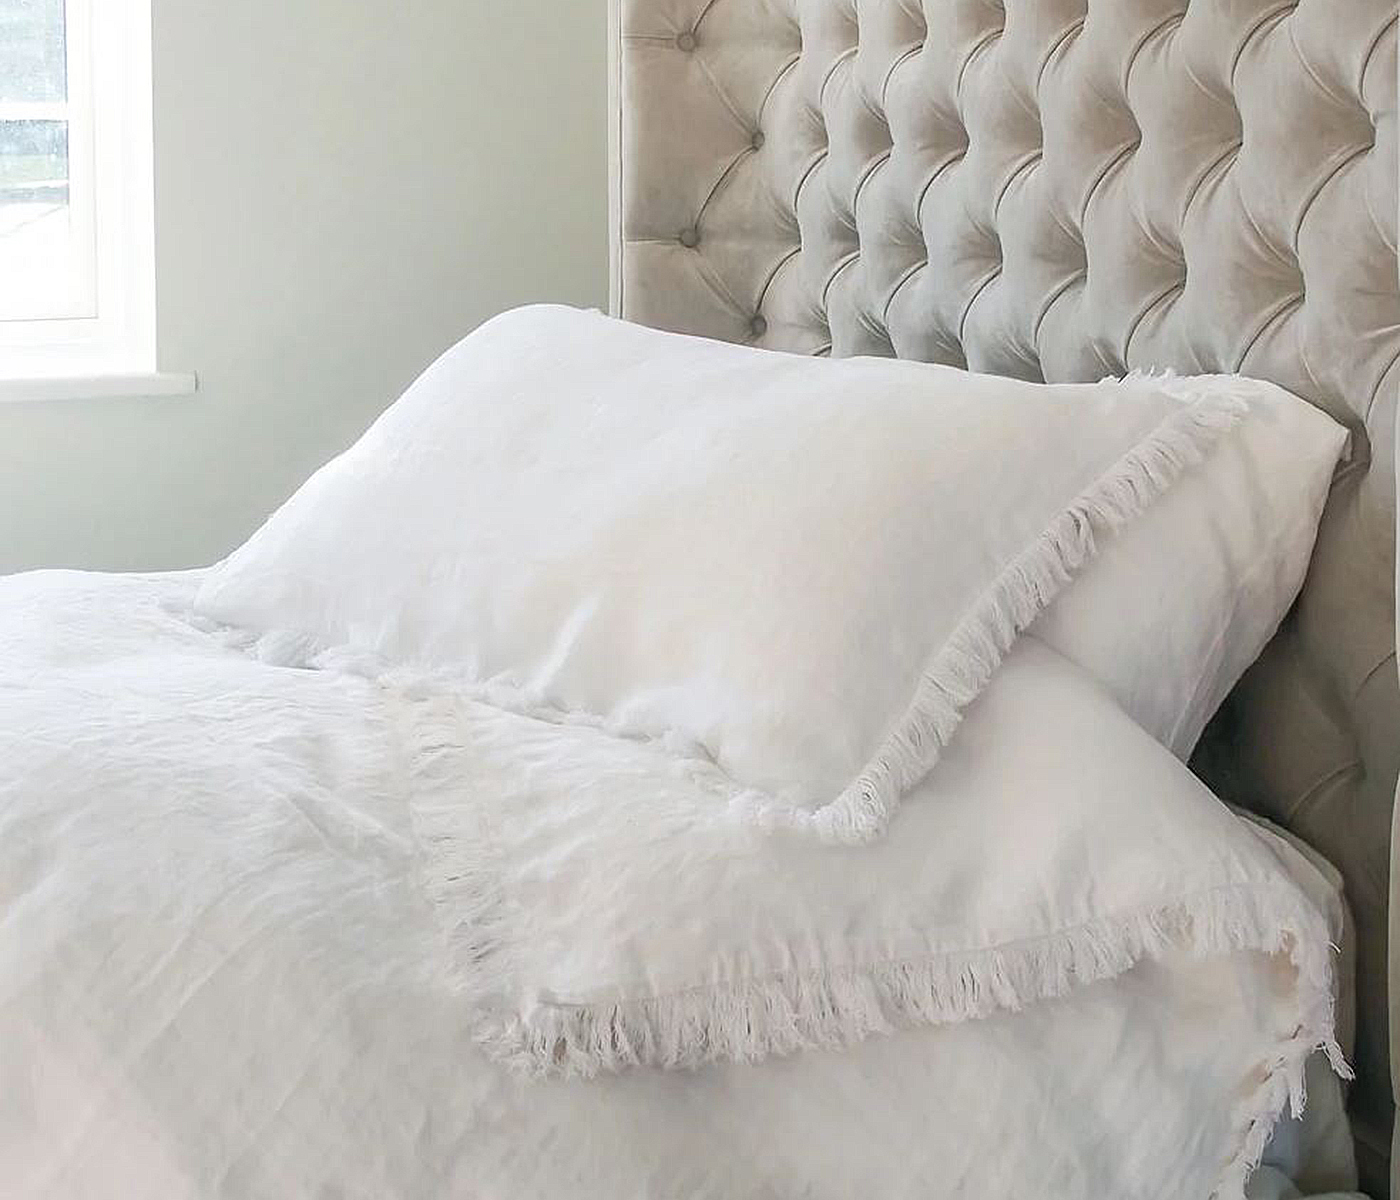 Fray Bed Linen Set, from £99 ($125), The French Bedroom Company, international delivery